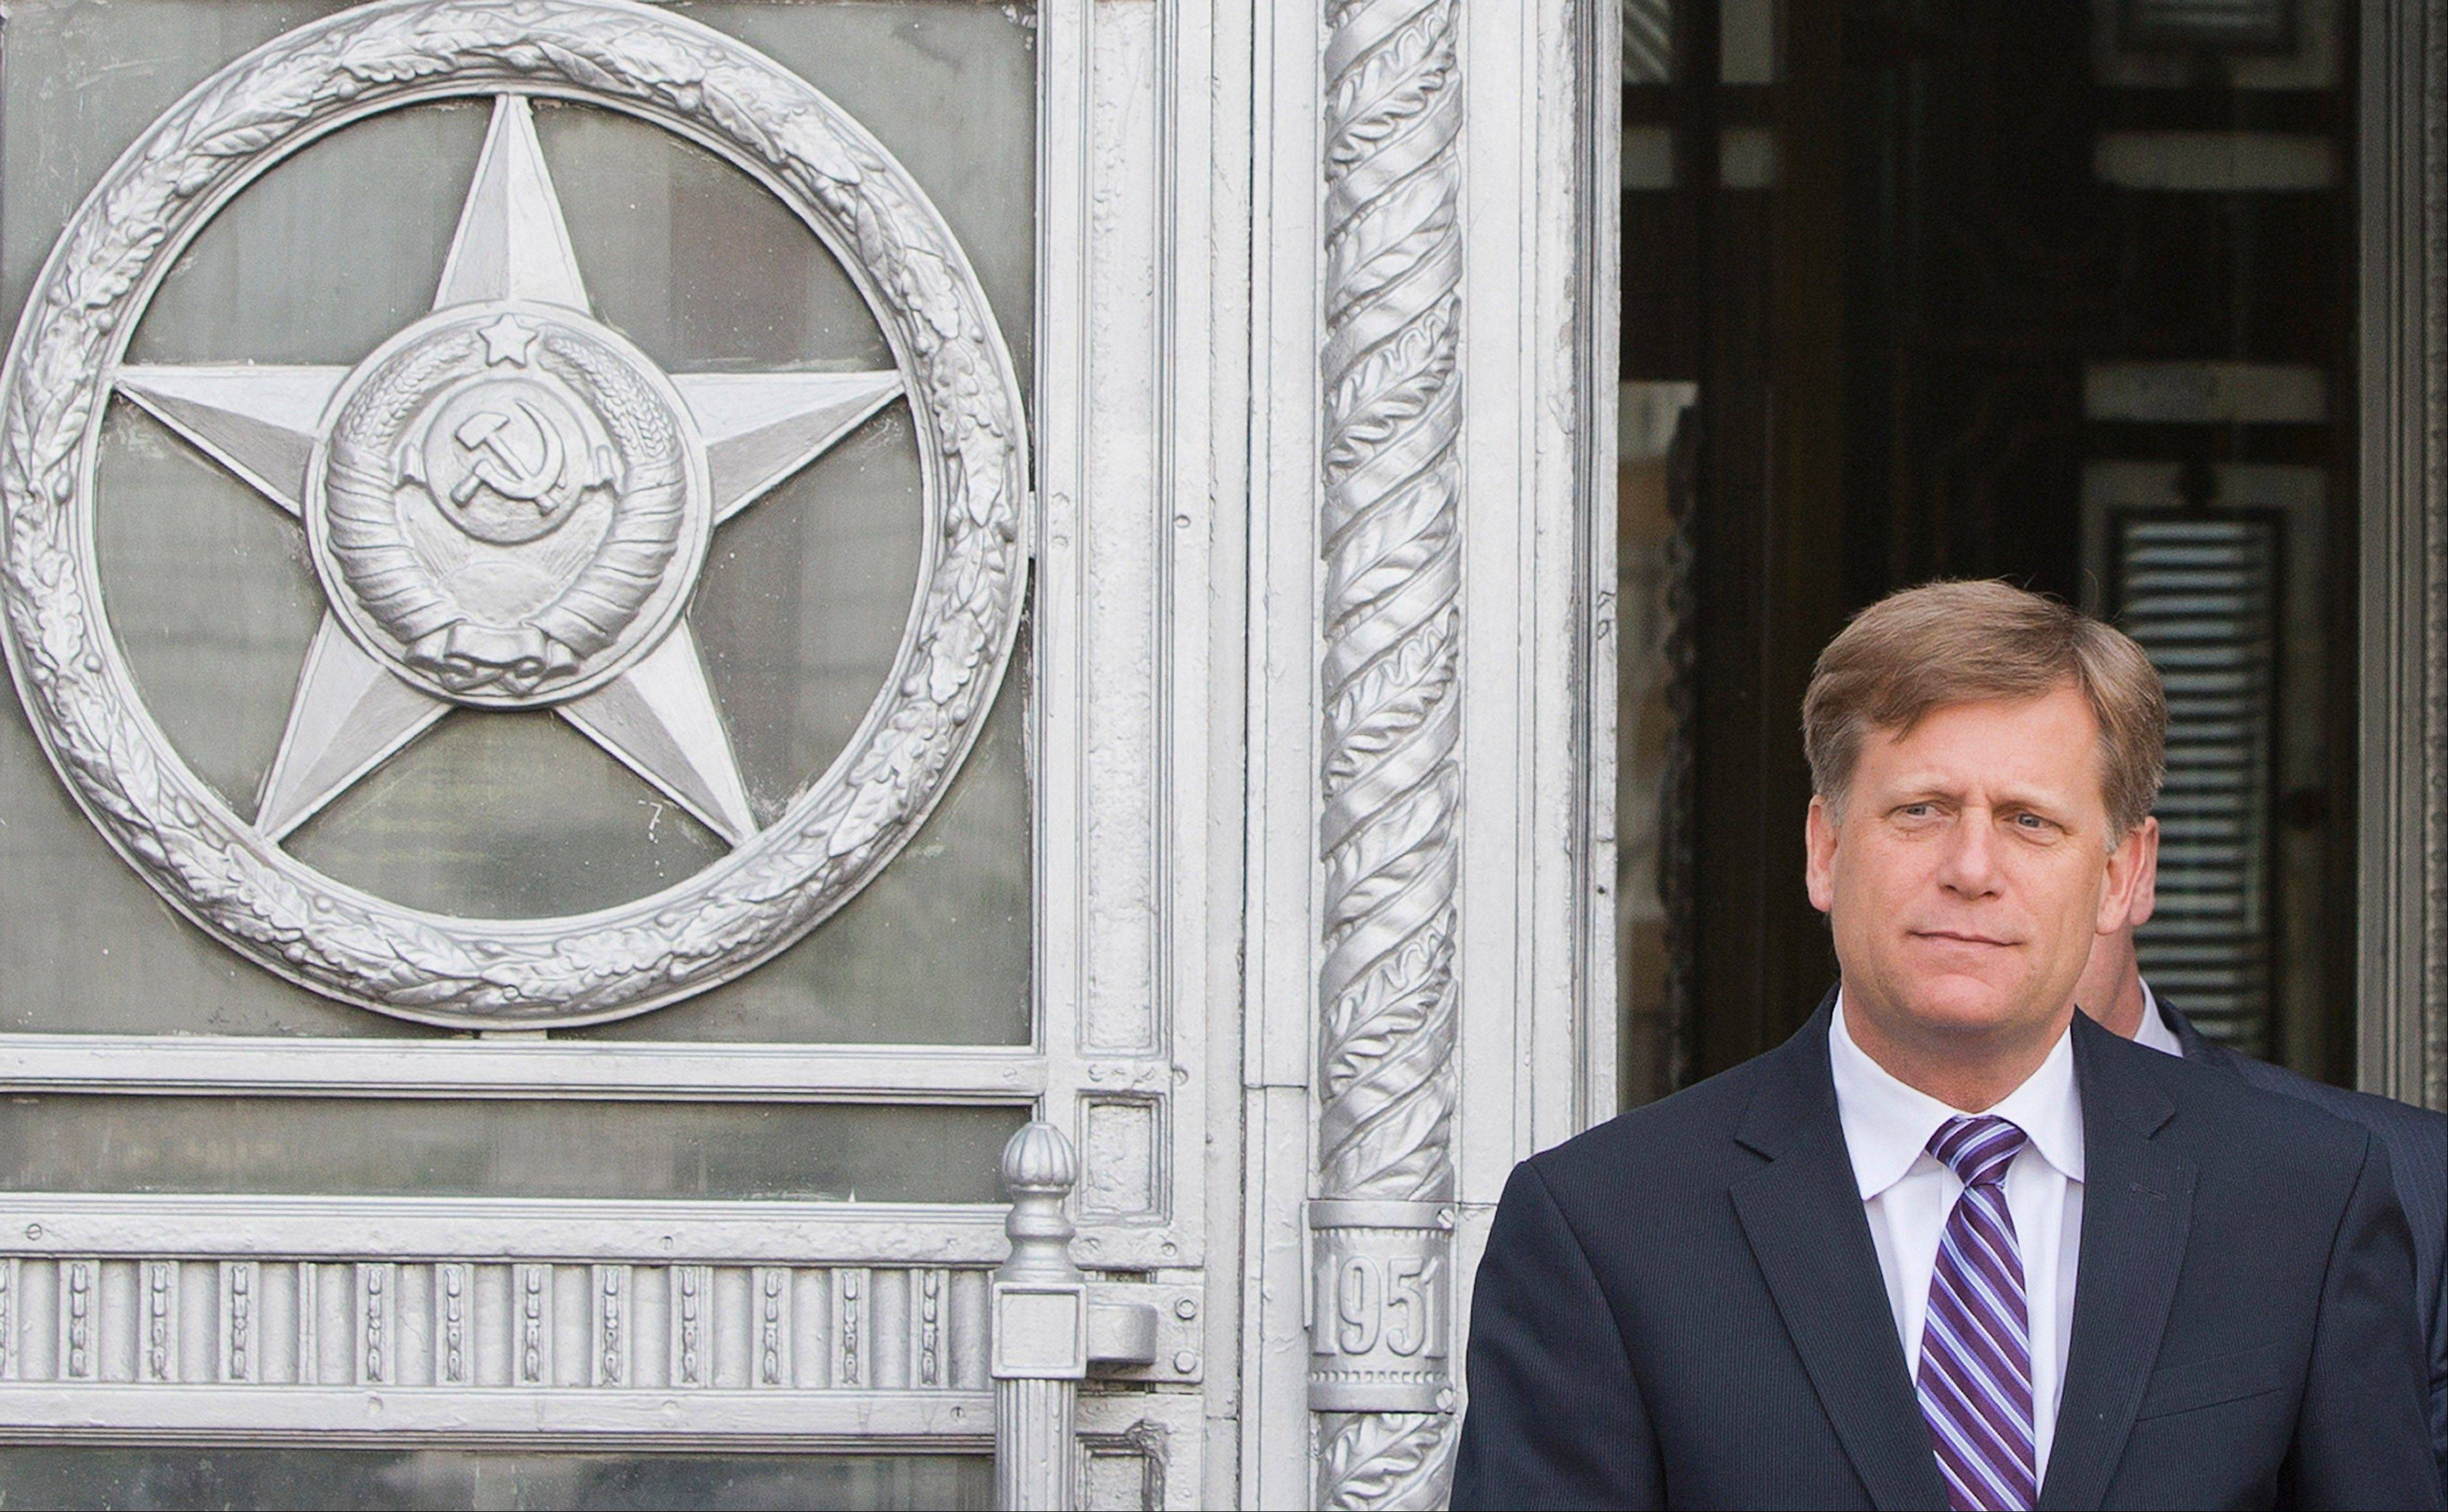 The U.S. Ambassador to Russia Michael McFaul leaves Foreign Ministry headquarters in Moscow, Russia, Wednesday, May 15, 2013. McFaul was summoned by the Russian foreign ministry in connection with an alleged spy detention in Moscow. He entered the ministry�s building in central Moscow Wednesday morning and left half an hour later without saying a word to journalists waiting outside the compound.